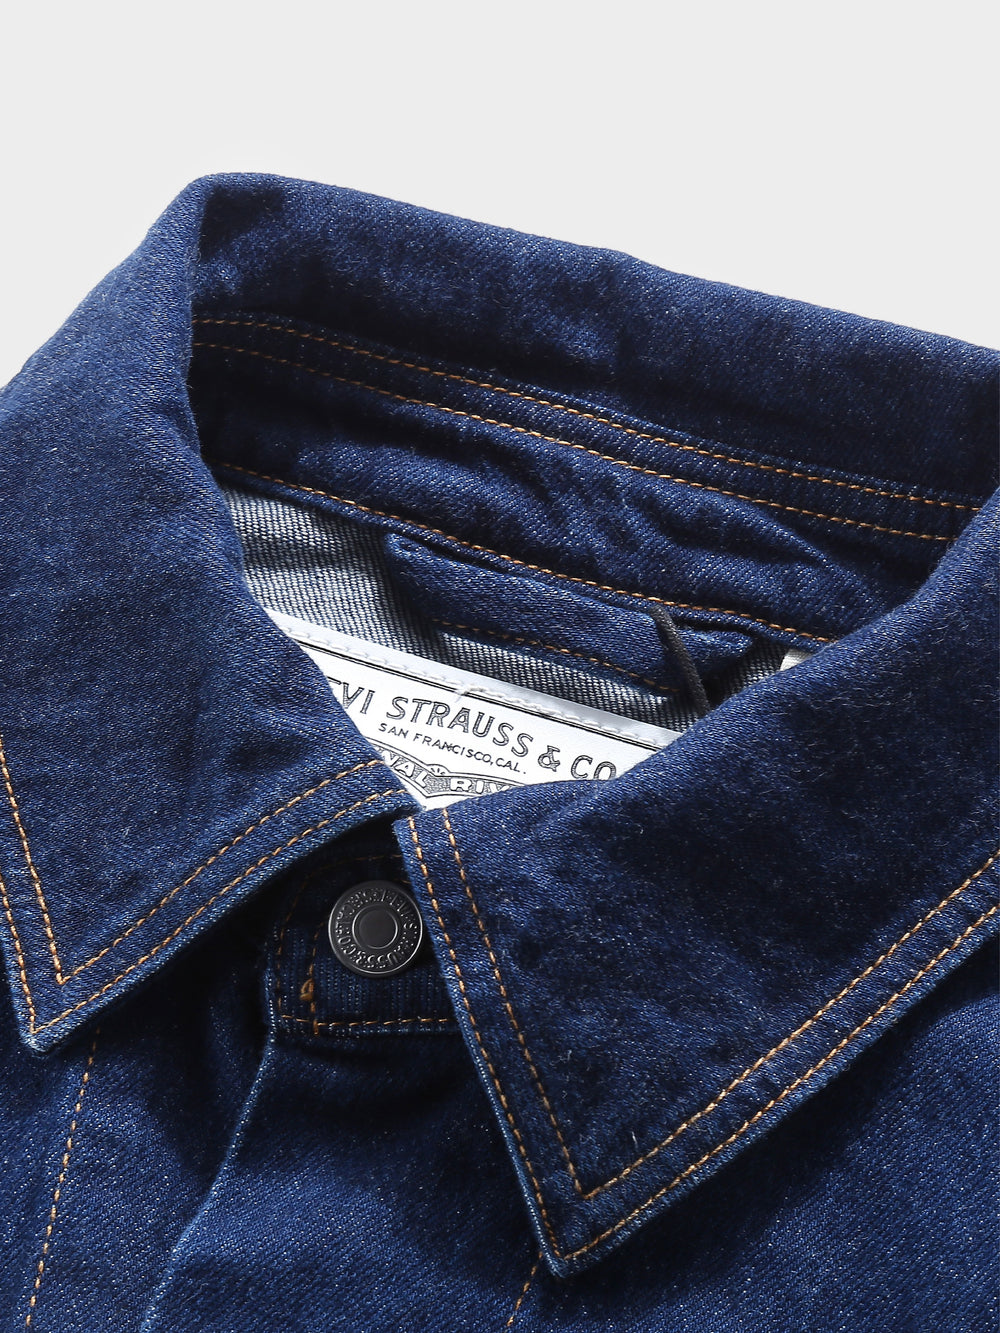 Feng Chen Wang × Levi's > Two in One Layered Denim Jacket